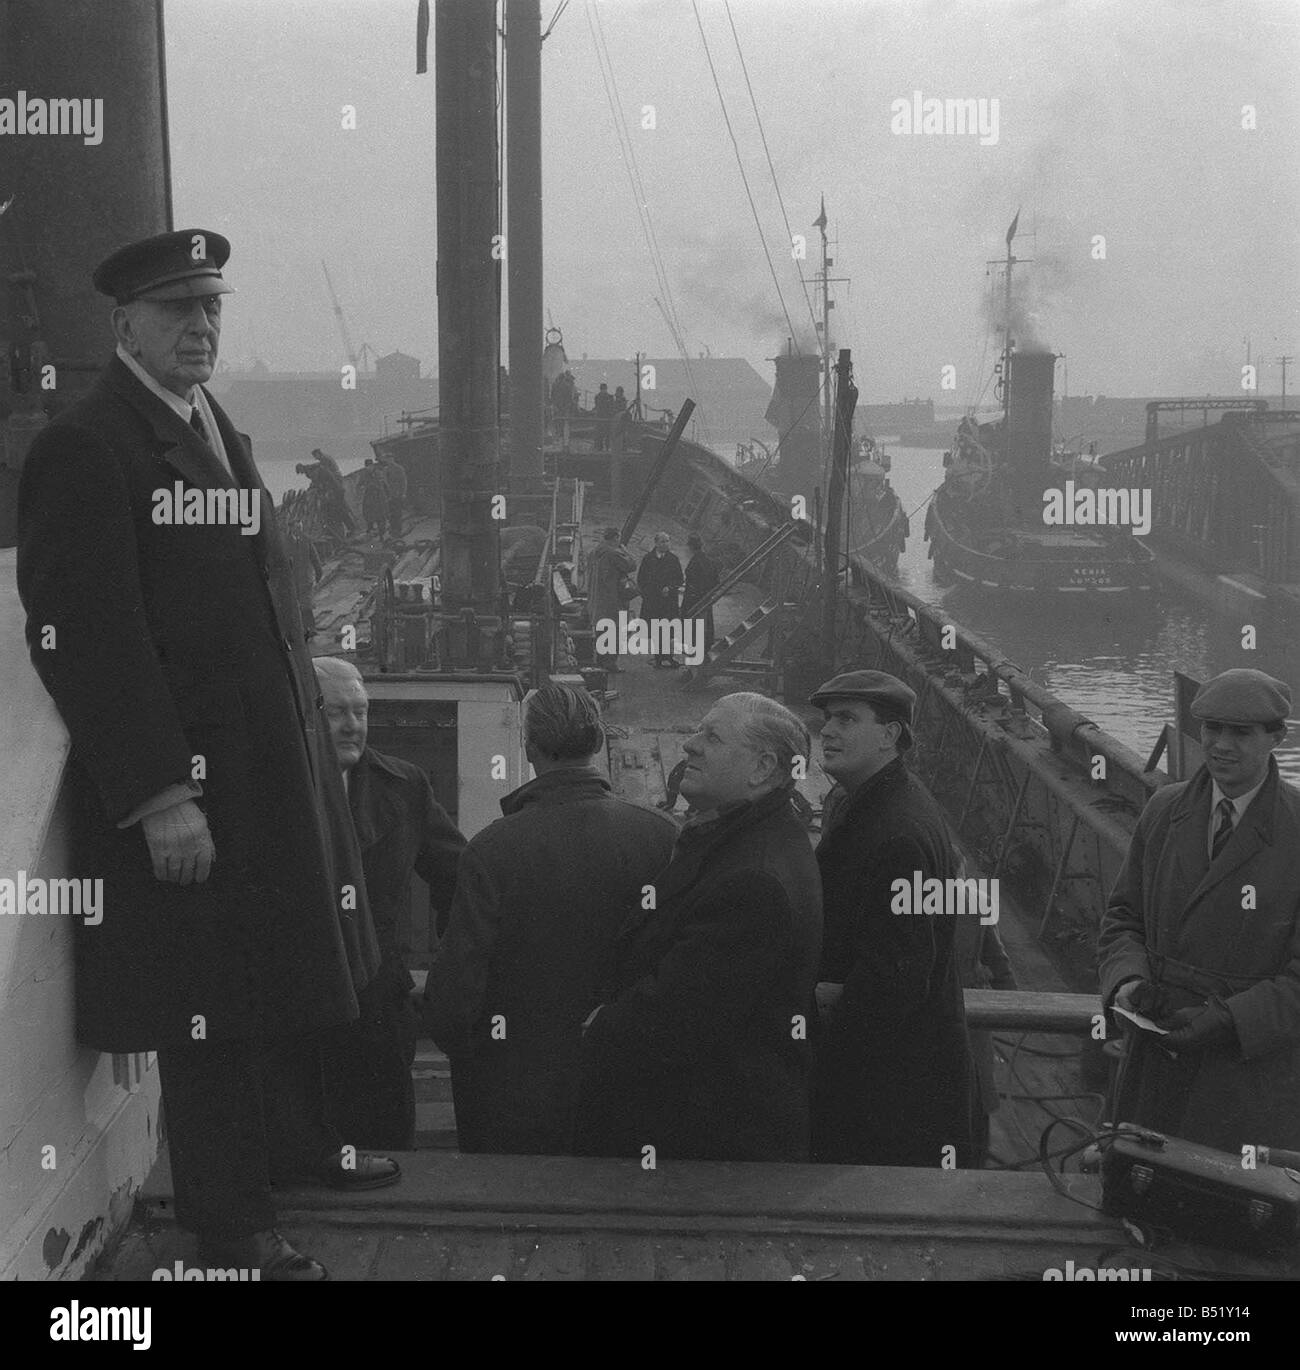 Tall Ships Last voyage of the Cutty Sark December 1954 The Captain and crew on board the Tea Clipper Cutty Sark - Stock Image